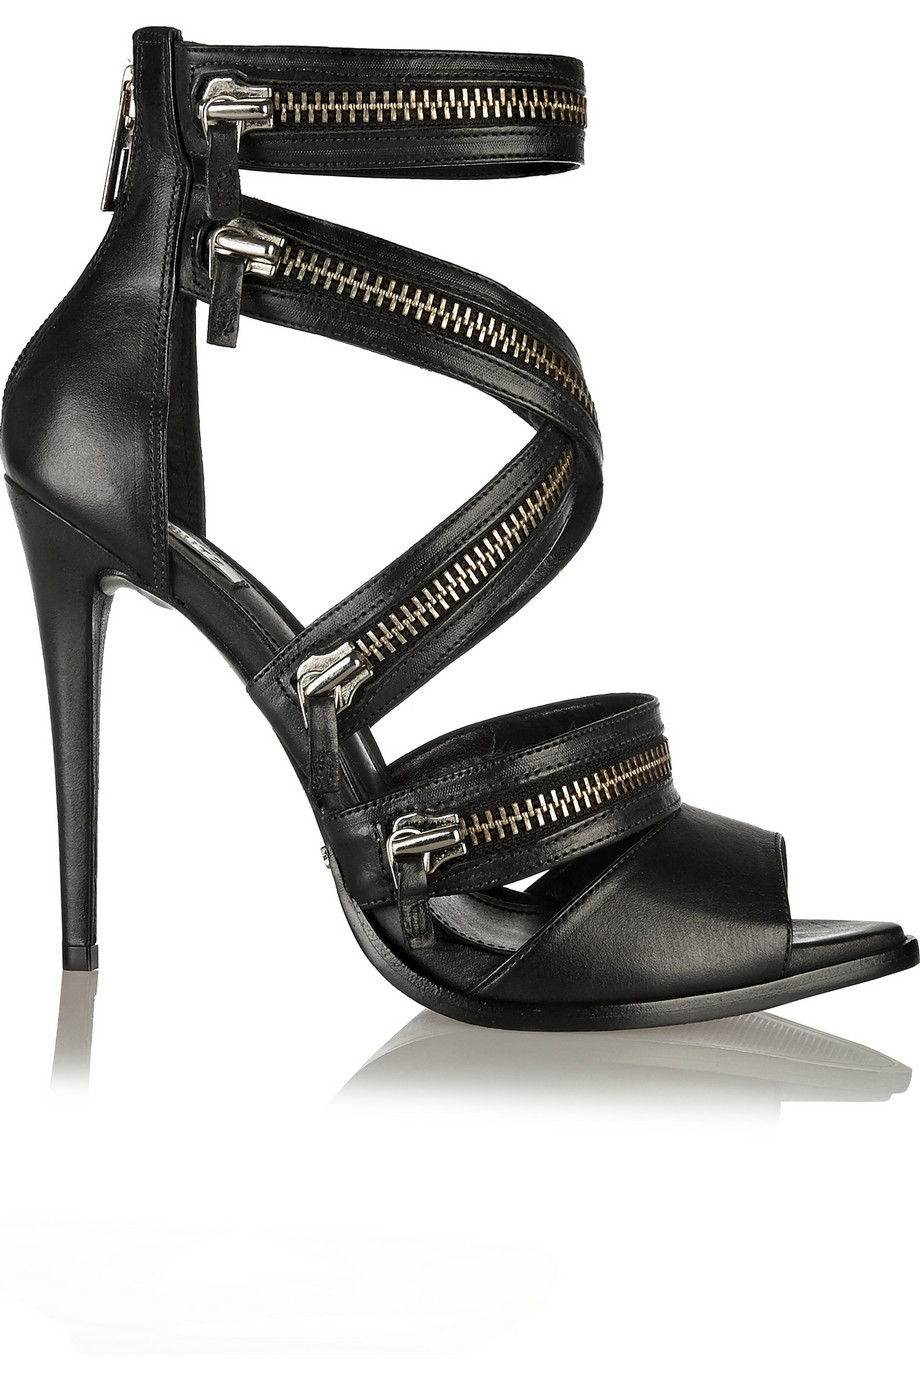 Schutz Nara Zipper Leather Sandals $144